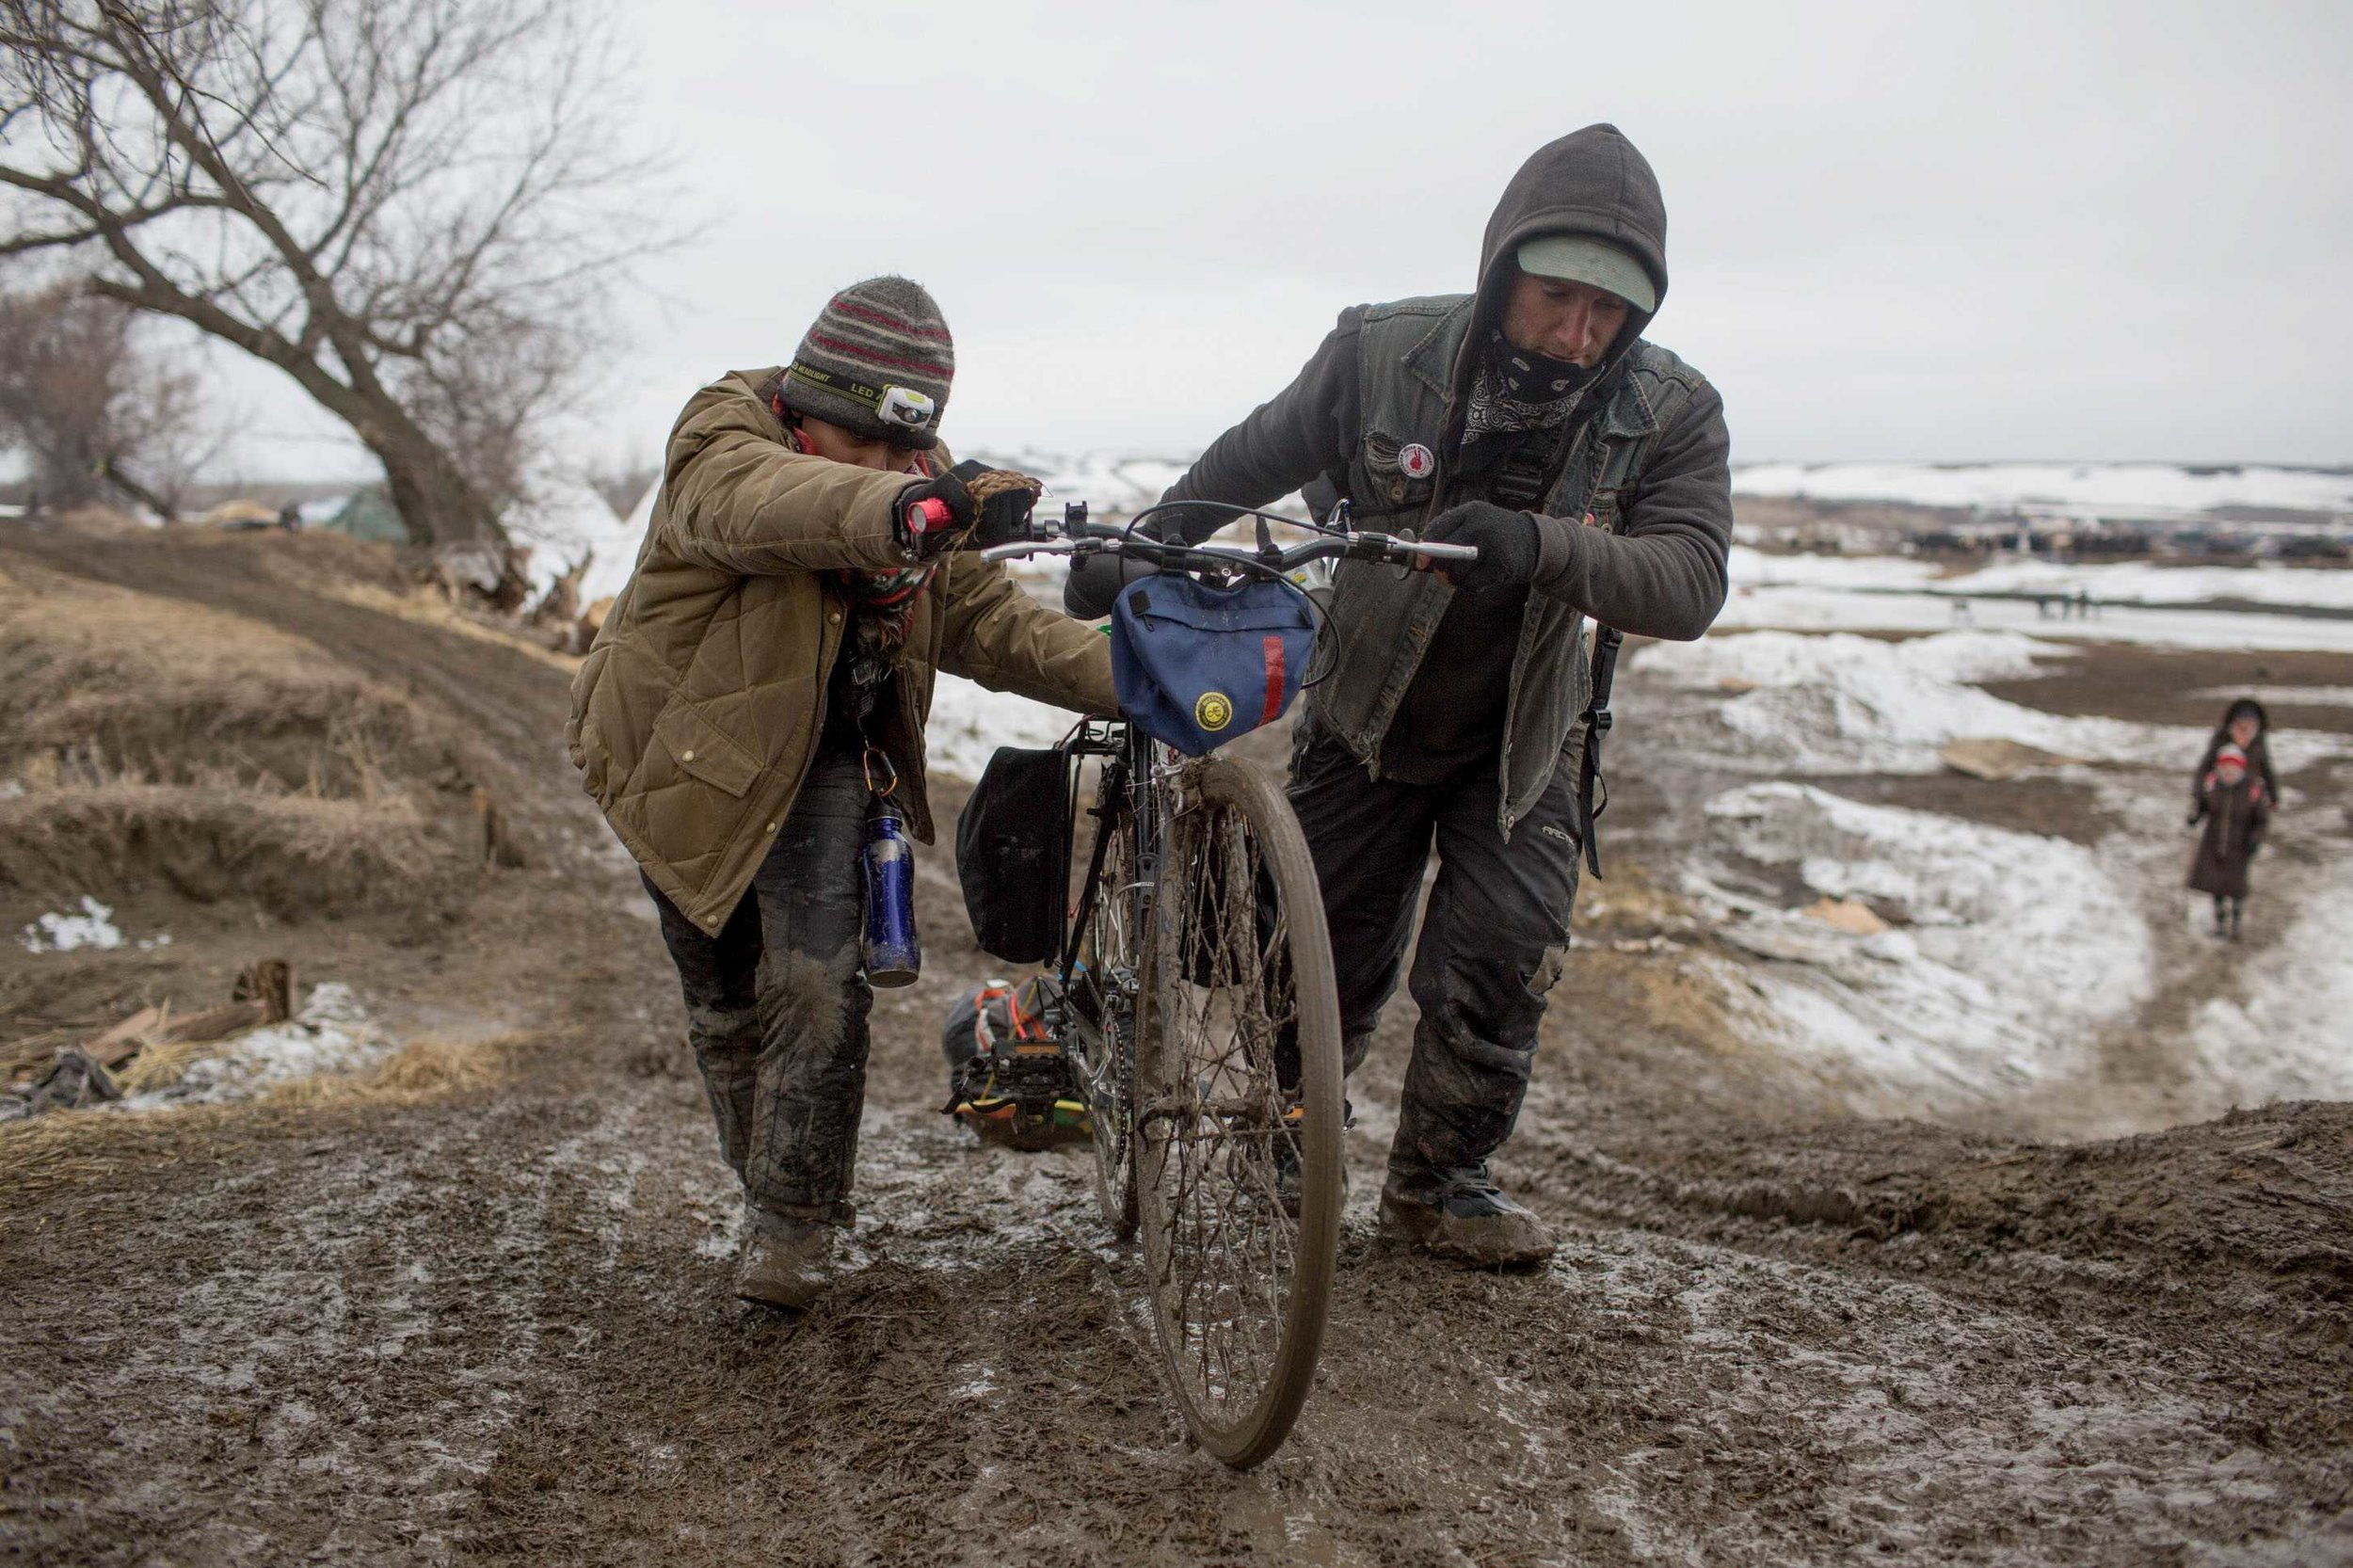 Water protectors push their bike up a hill in an effort to evacuate Rosebud Camp before Federal and state authorities (seen in the distance far right) move over the Cannonball River from Oceti Sakowin into the neighboring protest camps. Rosebud Camp, Cannonball, North Dakota Thursday February 23rd, 2017. by Ruth Iorio